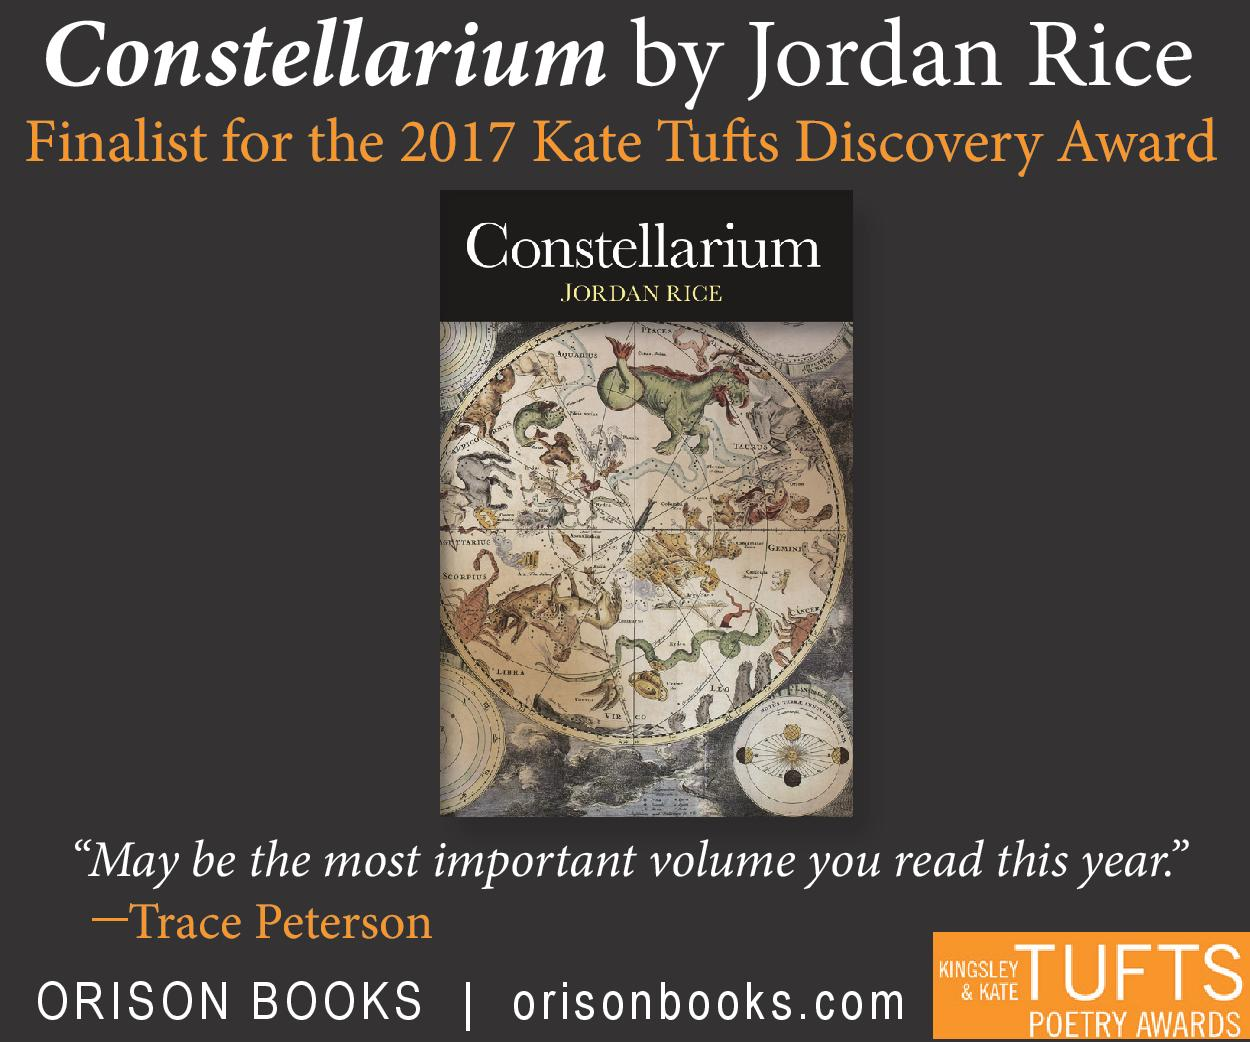 Constellarium